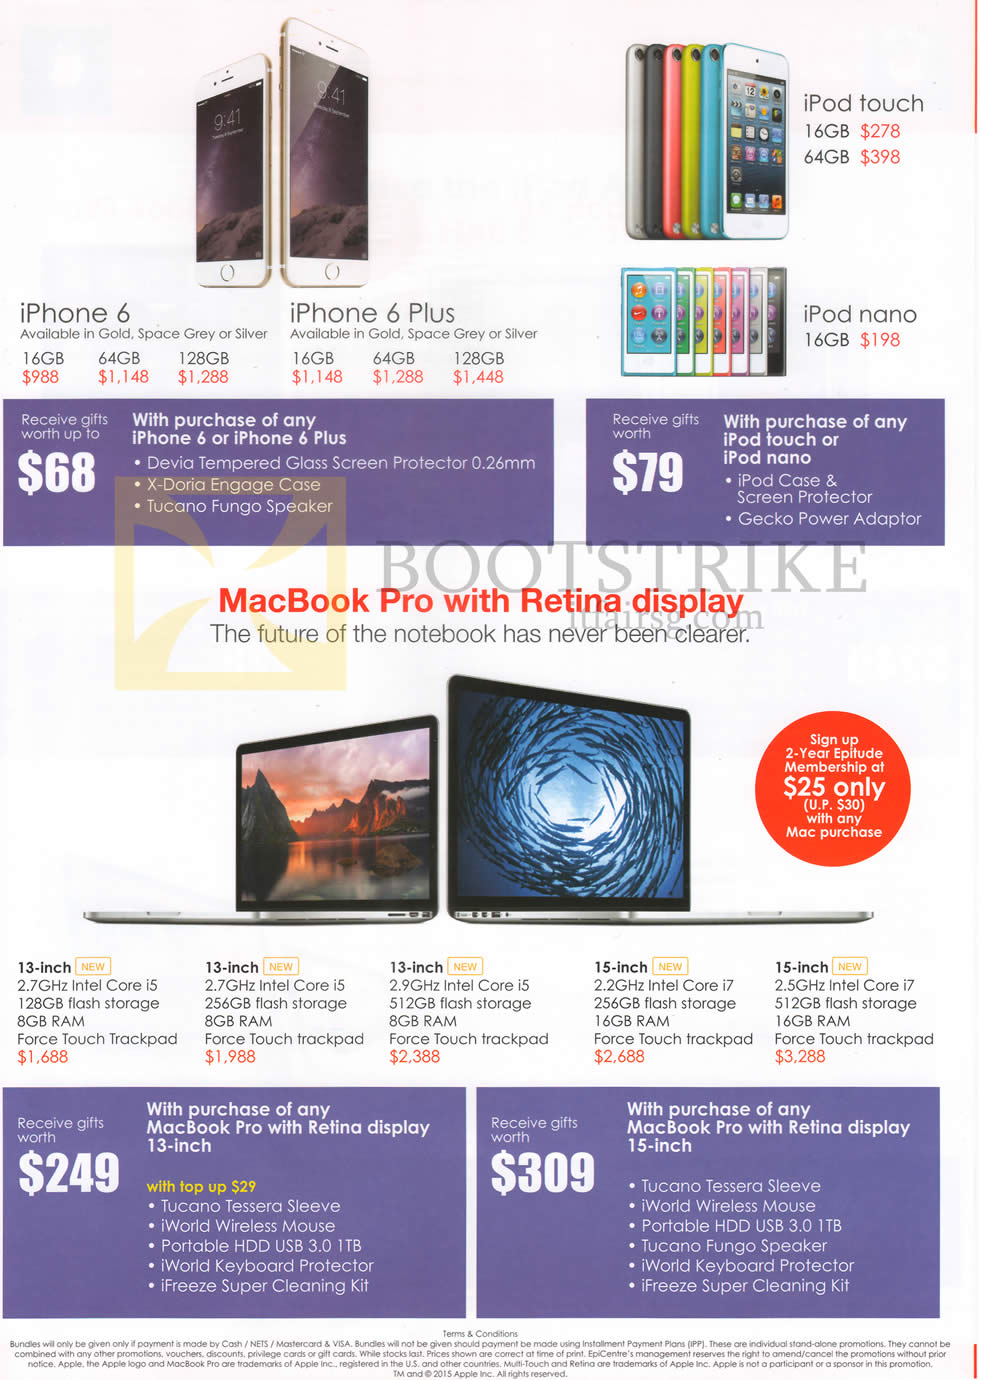 PC SHOW 2015 price list image brochure of EpiCentre Apple IPhone 6, IPhone 6 Plus, IPod Touch, IPod Nano, MacBook Pro, Purchase With Purchase